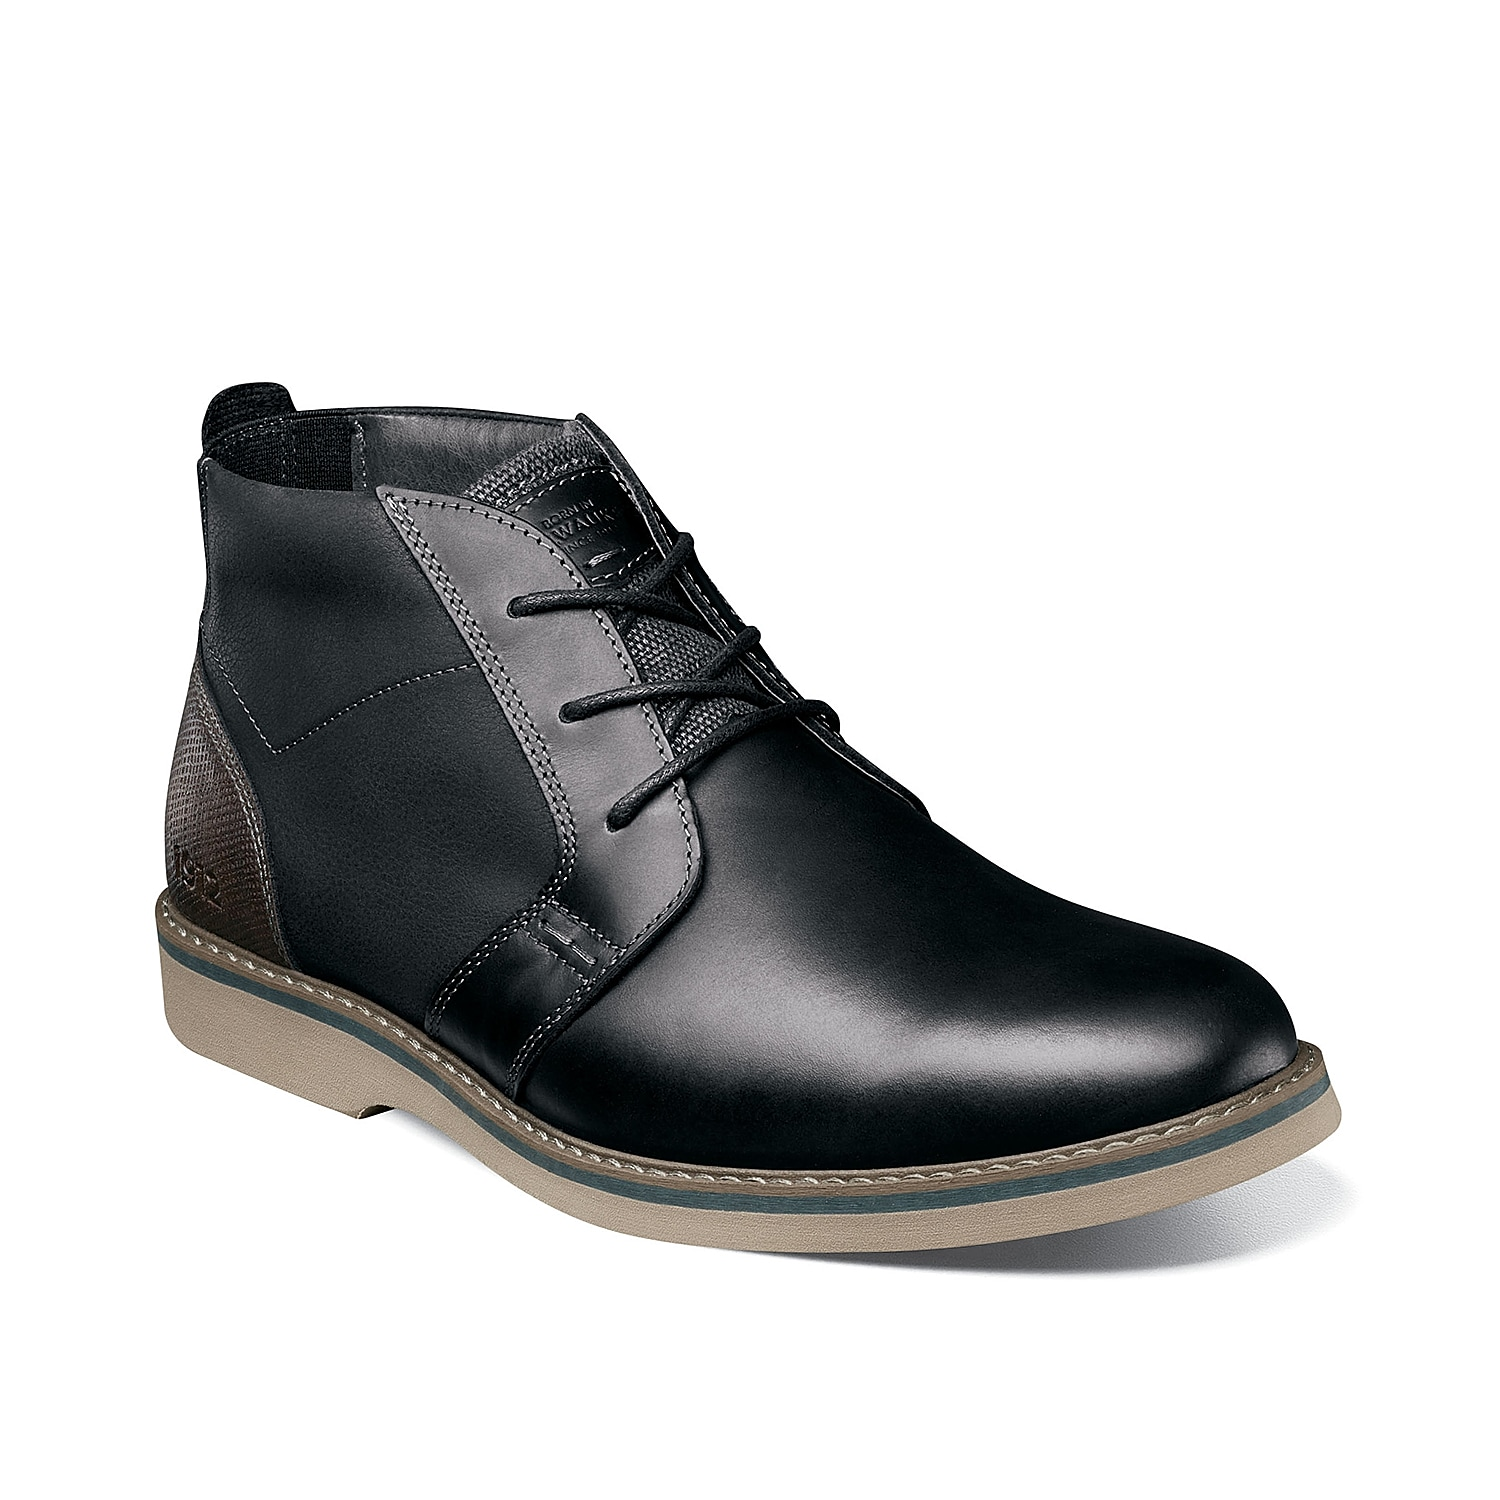 Streamline your style with the Barklay boot from Nunn Bush. This chukka features a durable leather construction and is backed by a Comfort Gel memory foam cushioned footbed to keep feet feeling great.